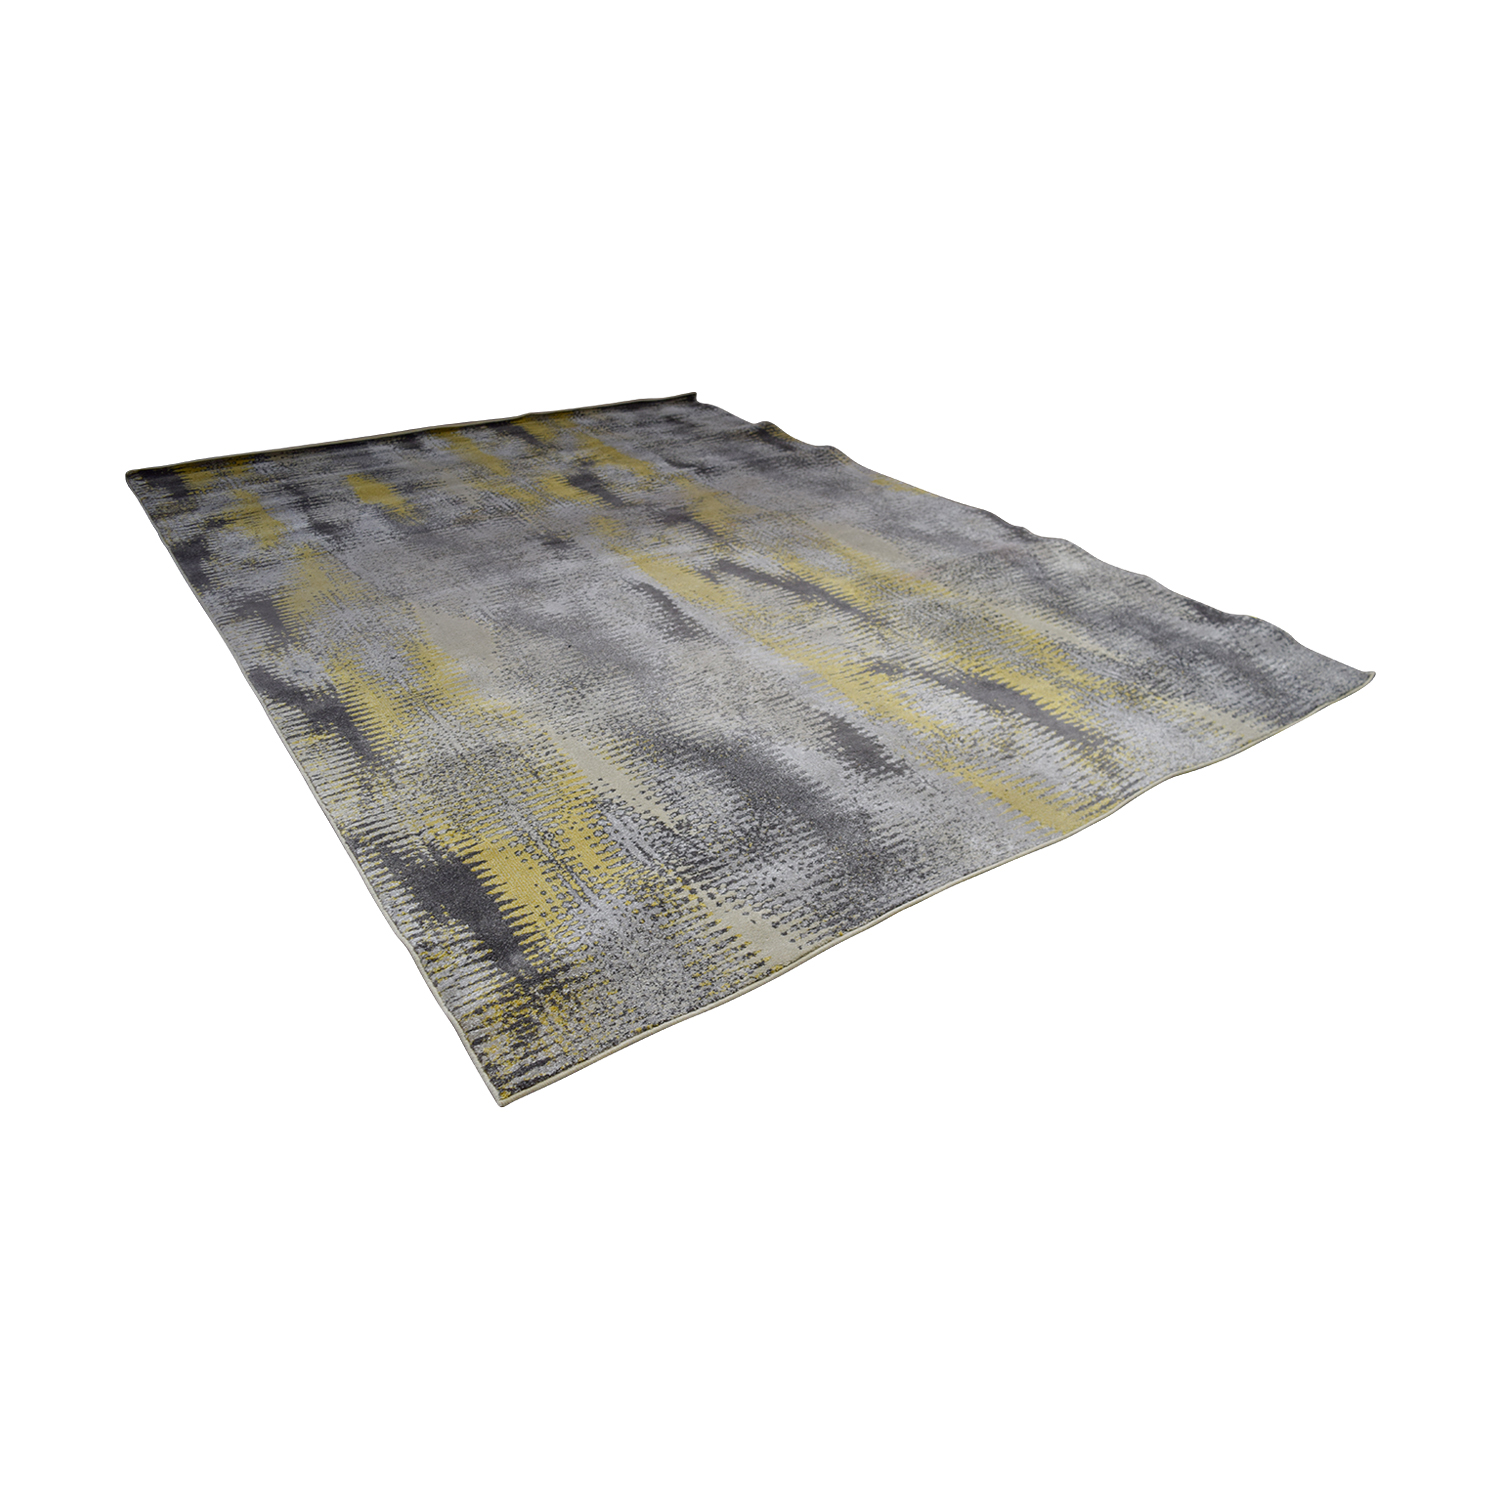 Daylan Rug Co Yellow and Grey Rug Daylan Rug Co